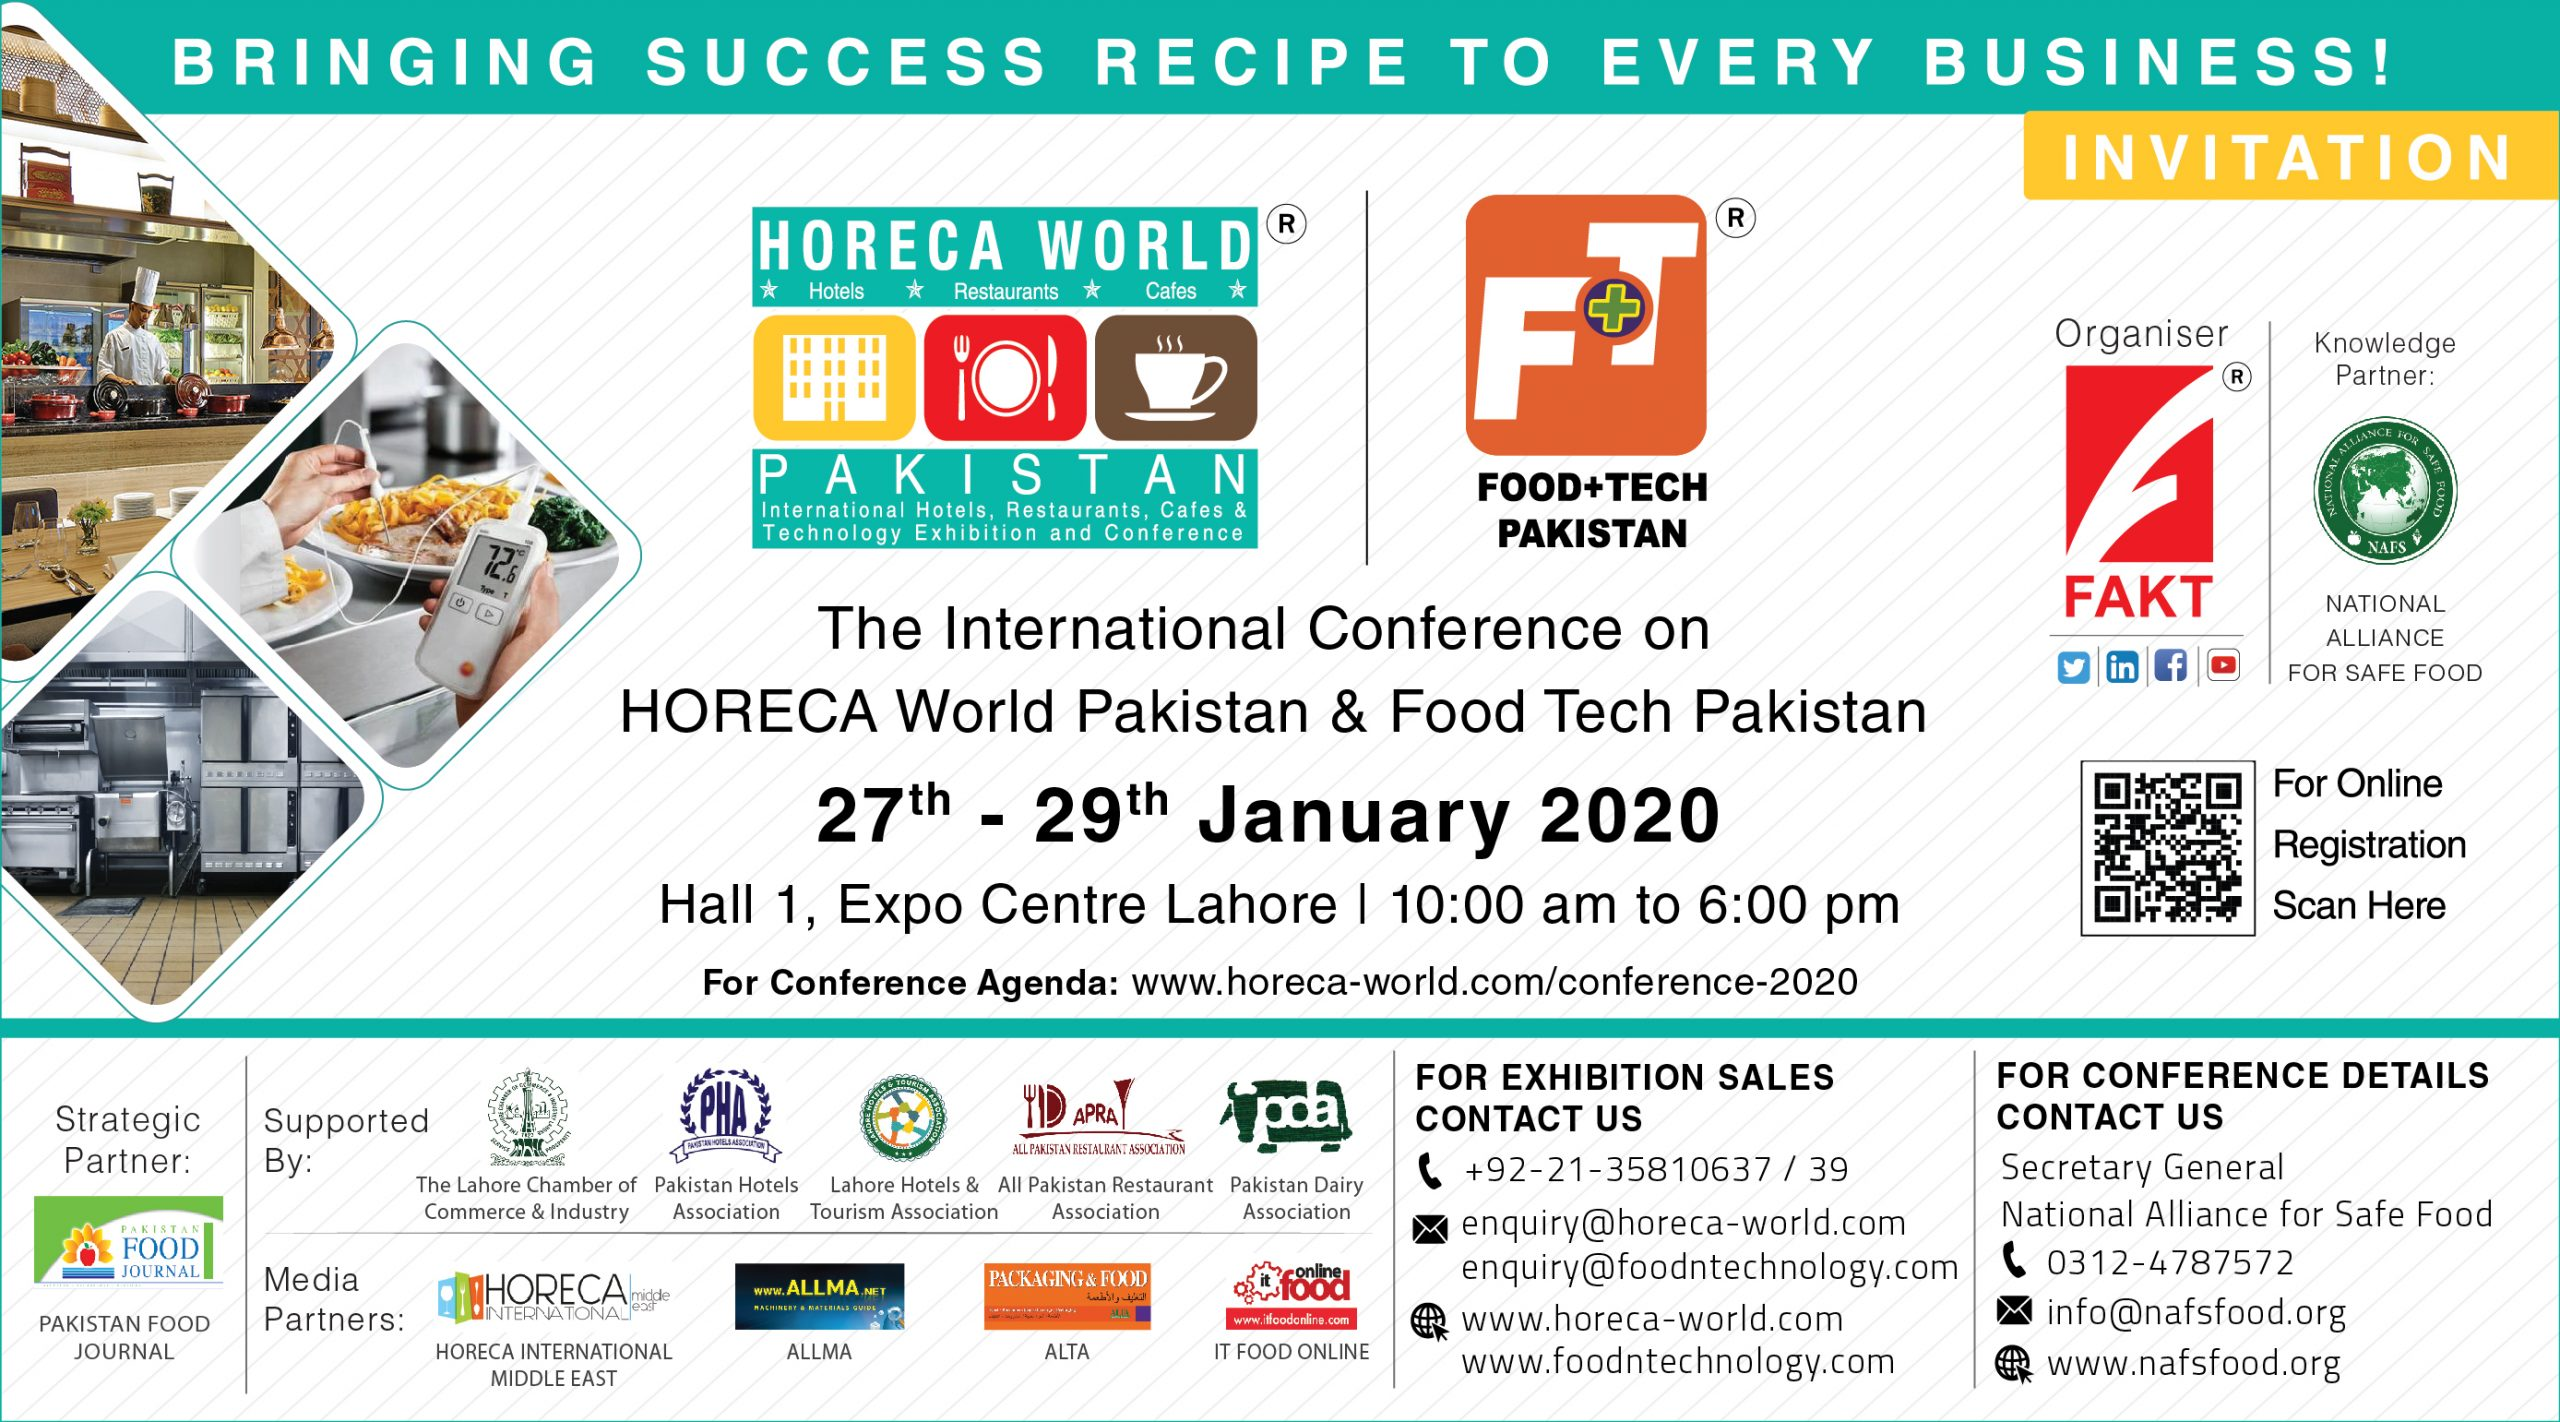 Horeca World